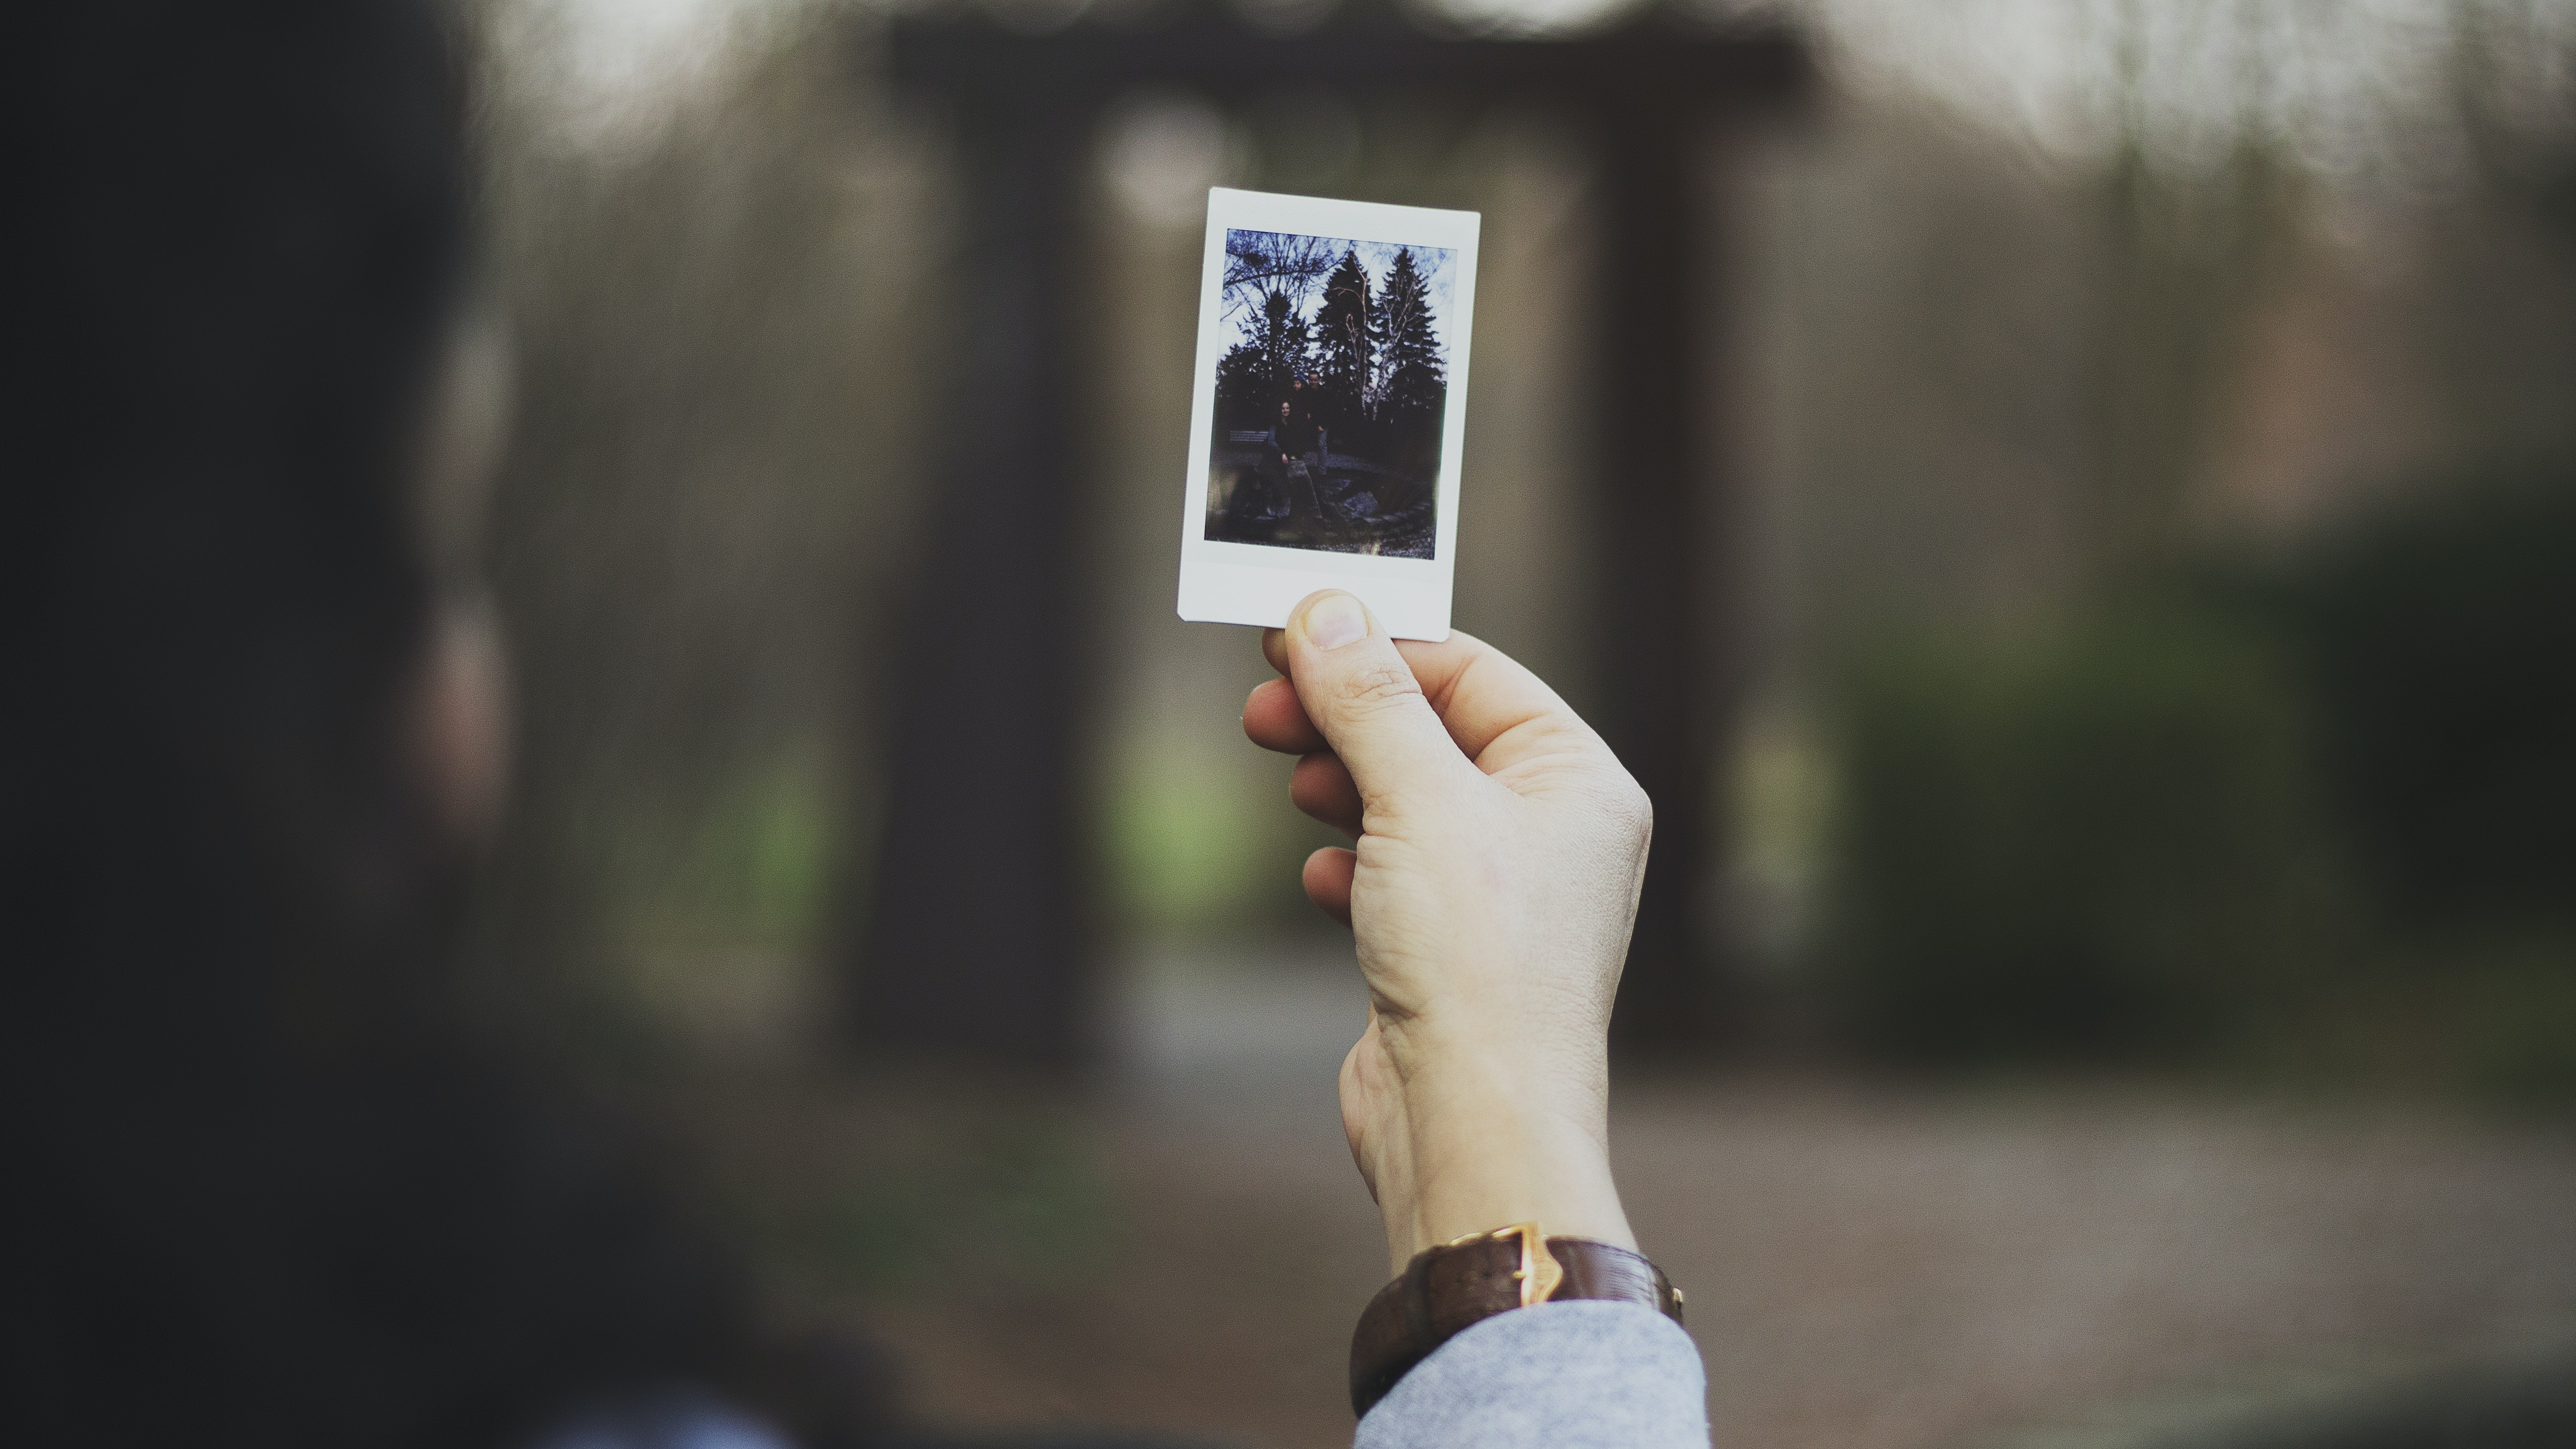 A person wearing a watch, holding a Polaroid picture of a forest in their hand